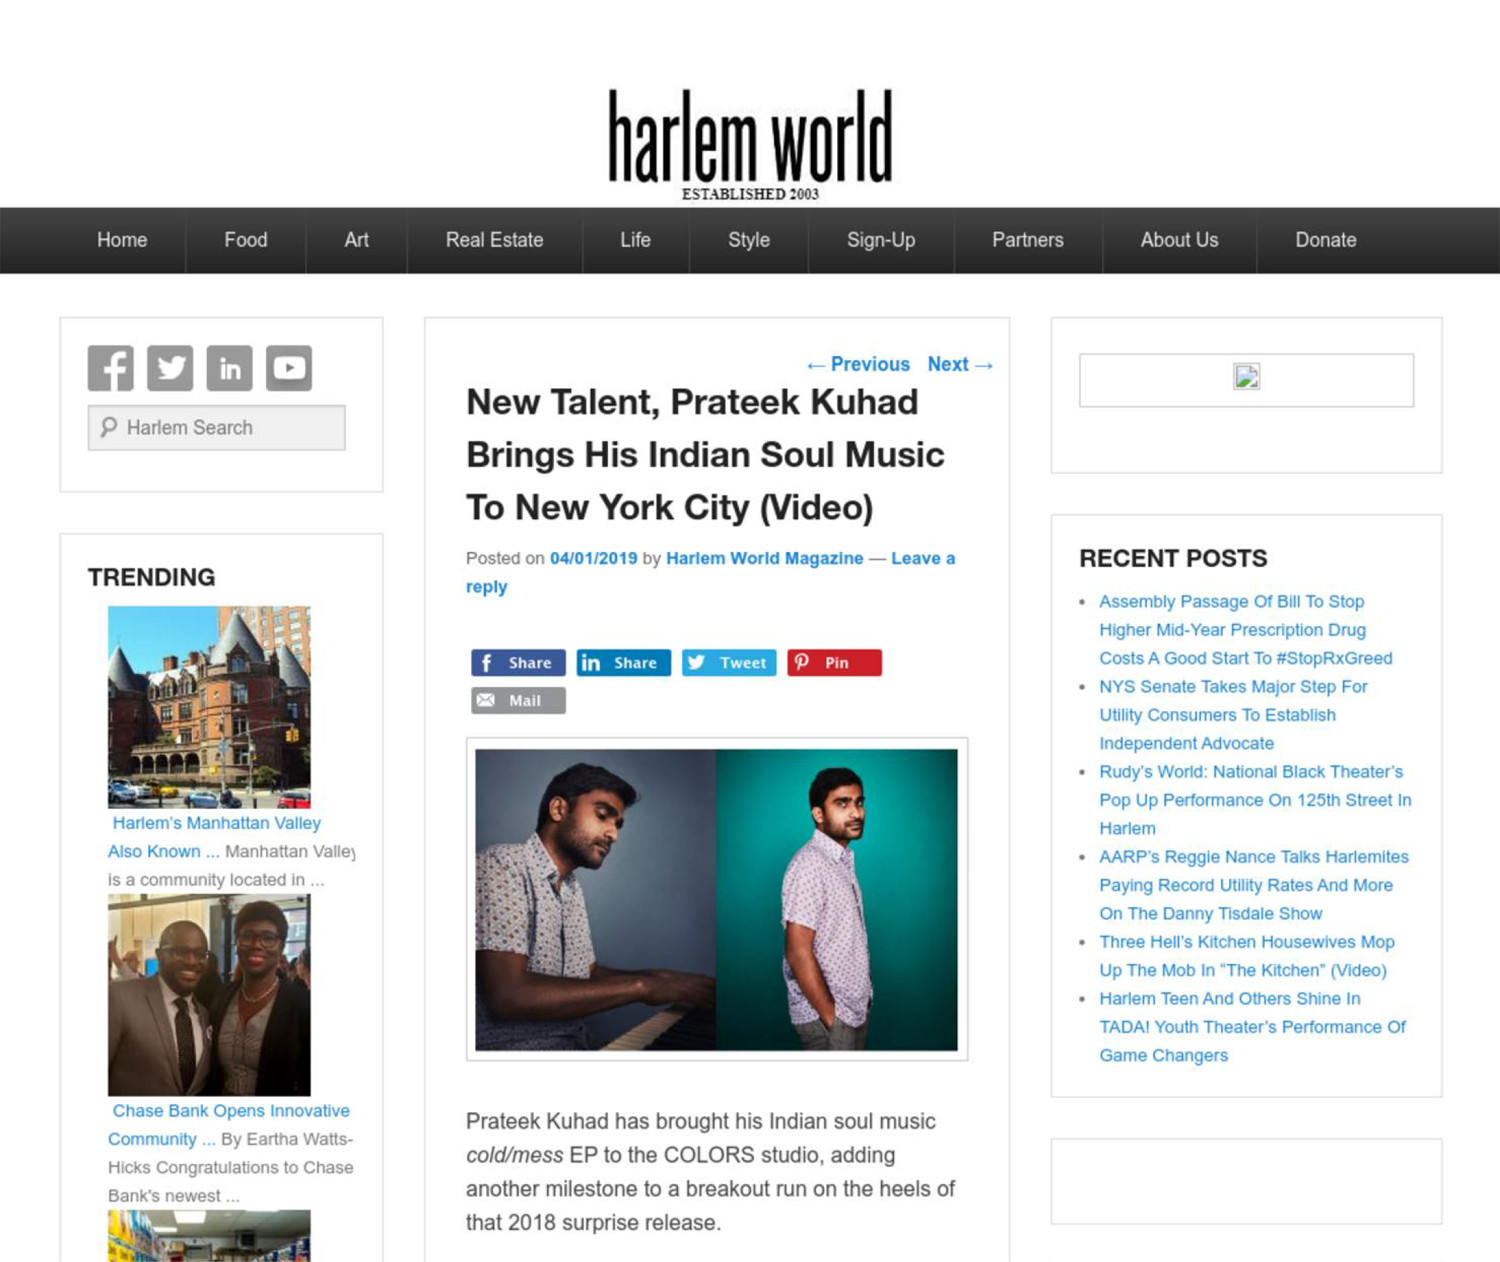 New Talent, Prateek Kuhad Brings His Indian Soul Music To New York City